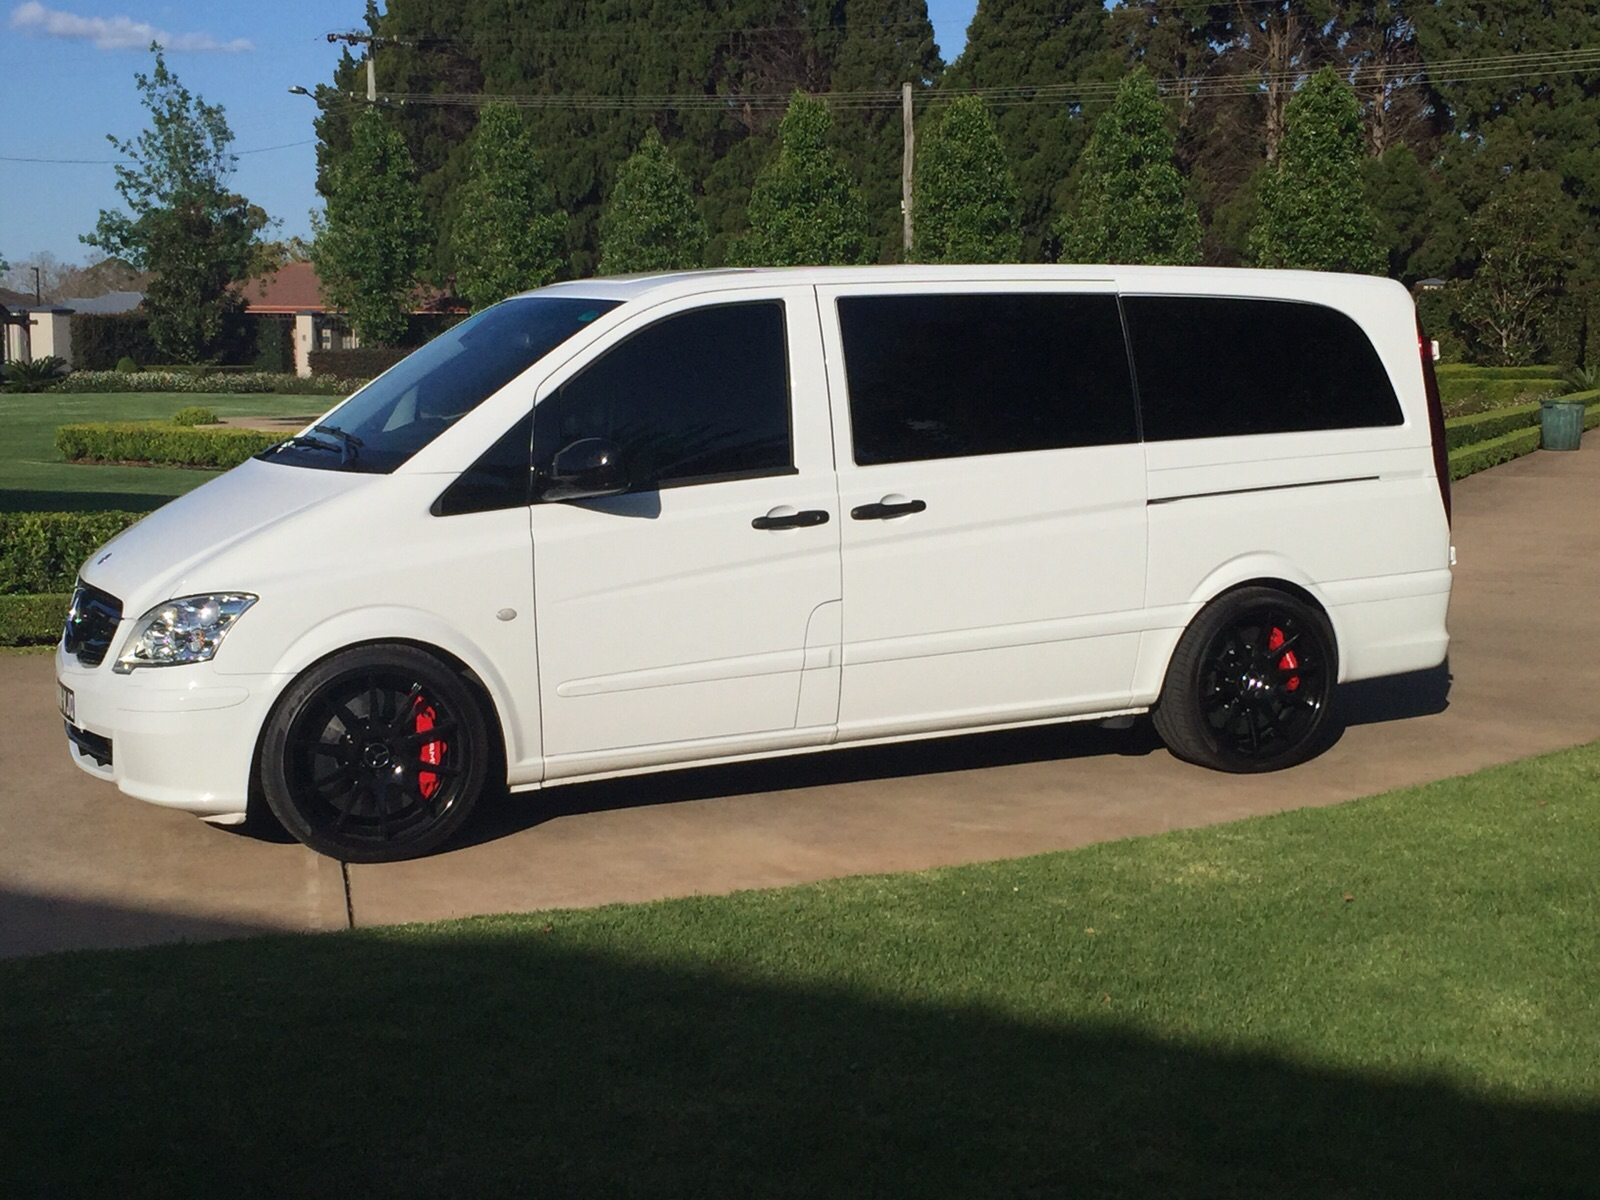 Mercedes Benz Brake Pads And Rotors >> Mercedes Vito on Carbon Ceramic Movit Brakes - Happy Customer ! / Tuning Empire